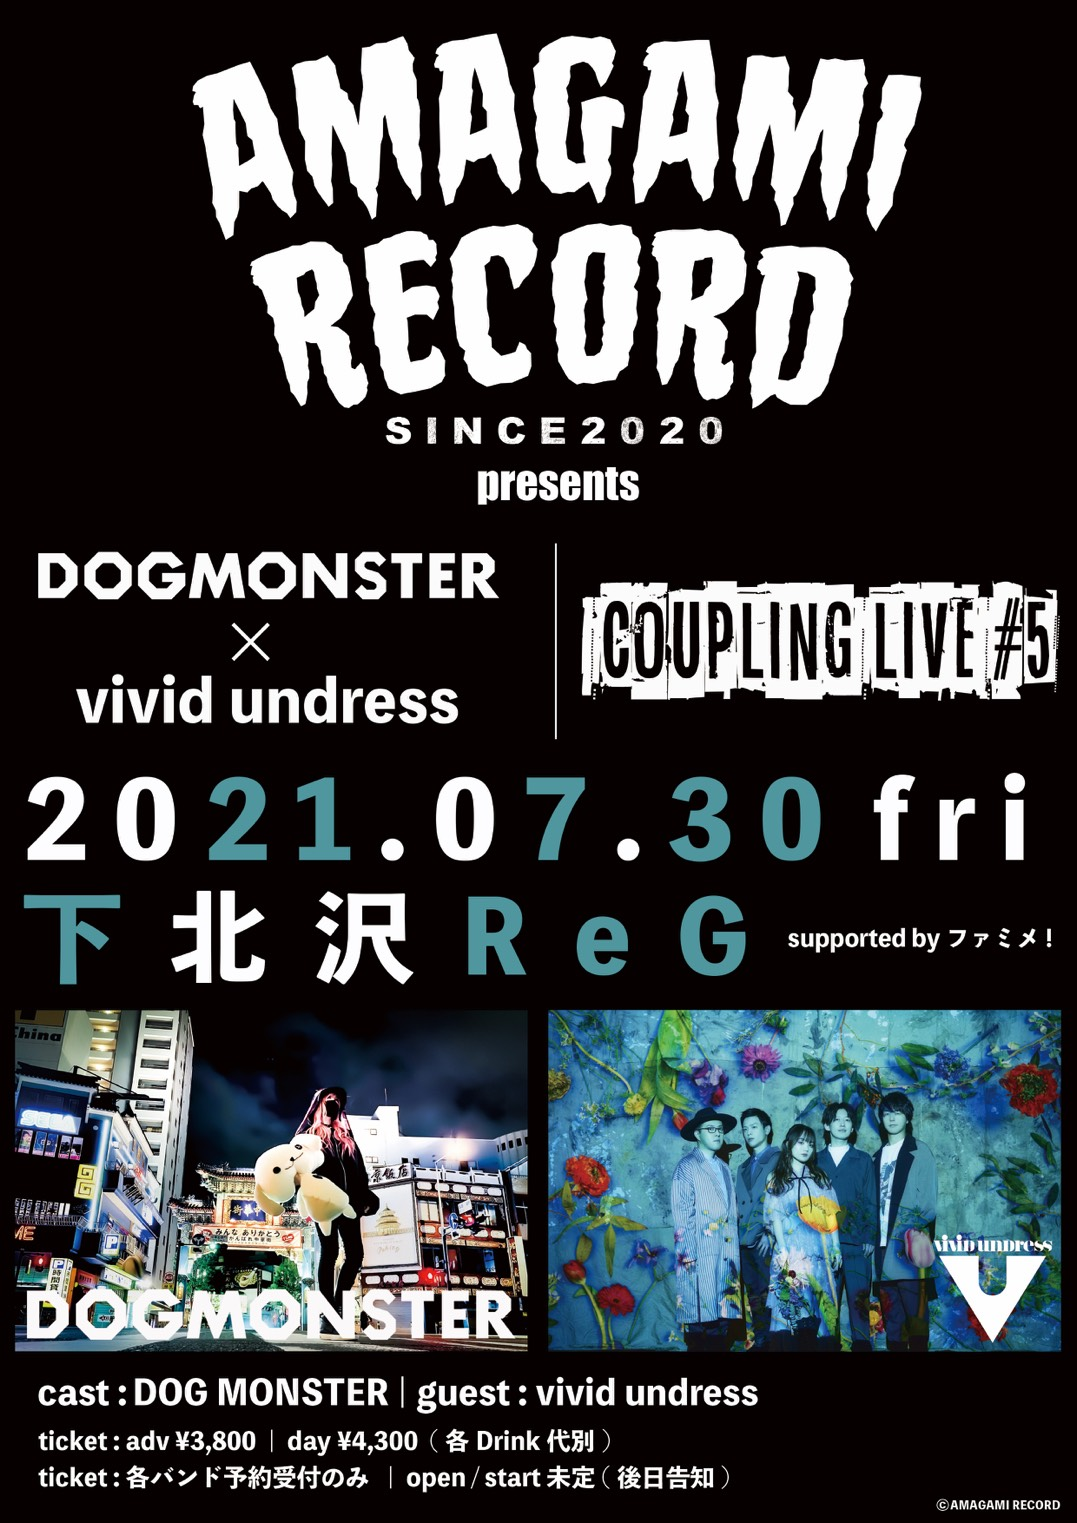 (SOLD OUT!)AMAGAMI RECORD presents『COUPLING LIVE #5』